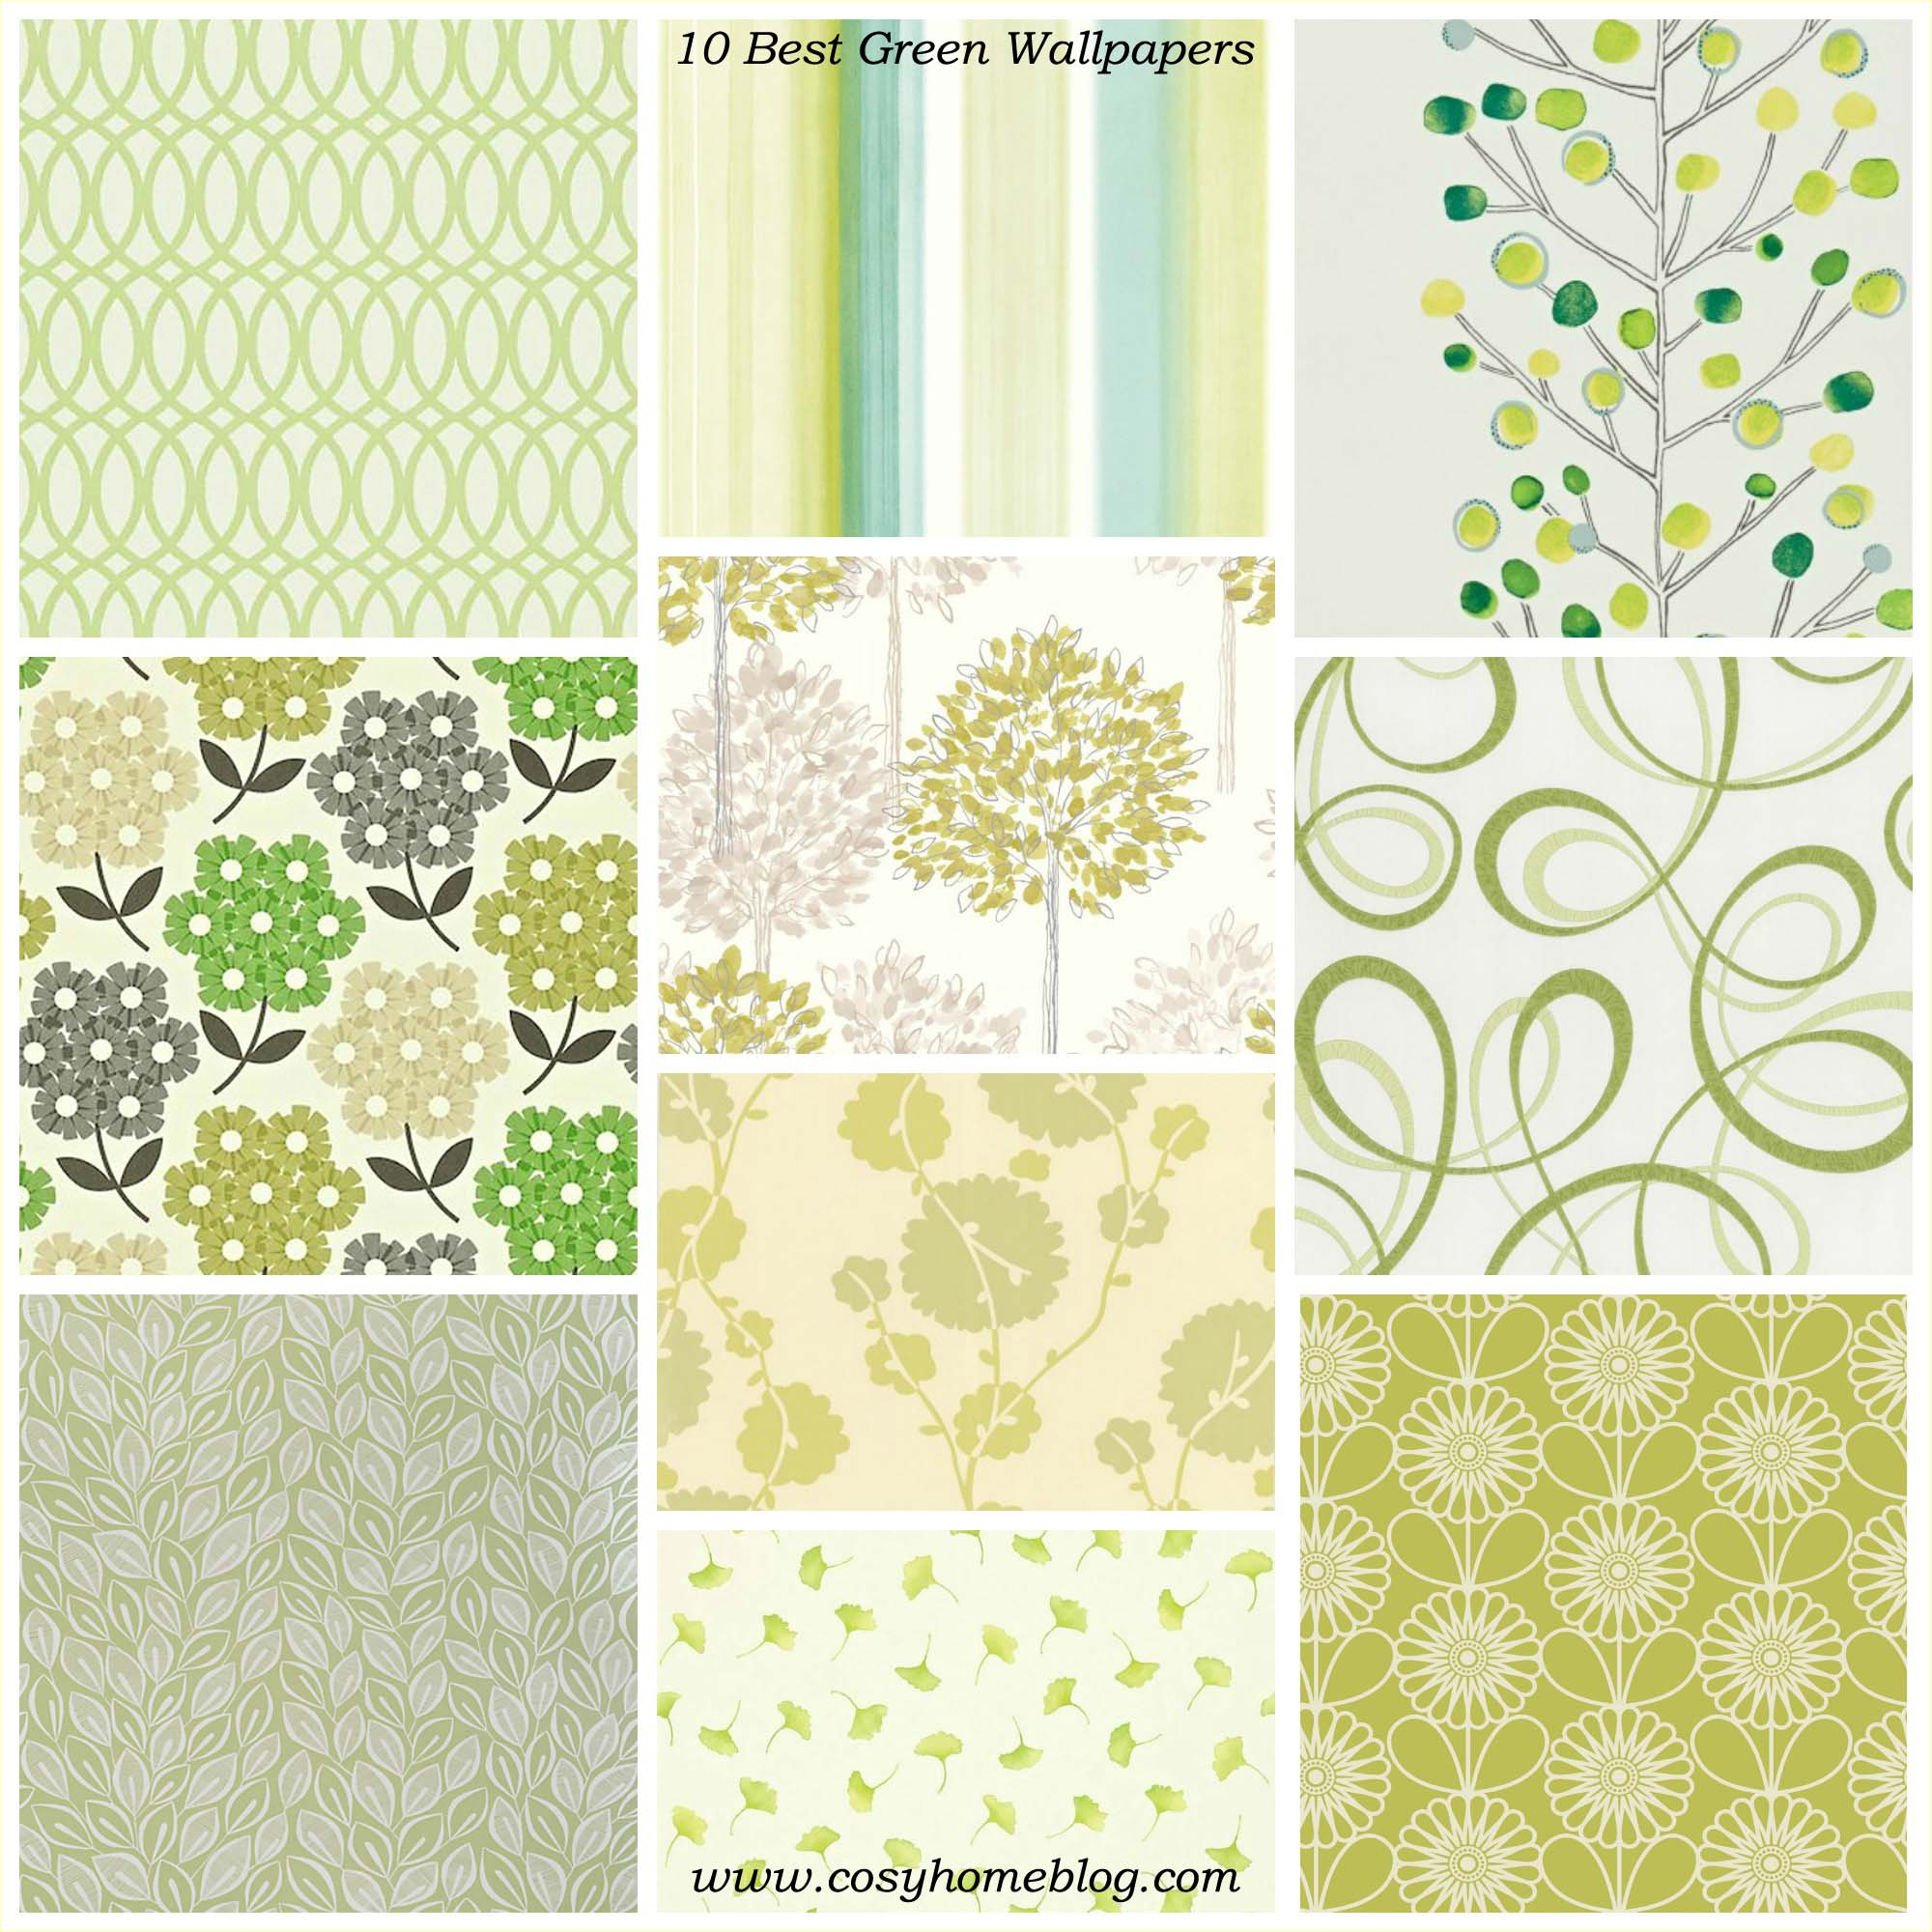 10 Top Green Theme Wallpaper Decor ...